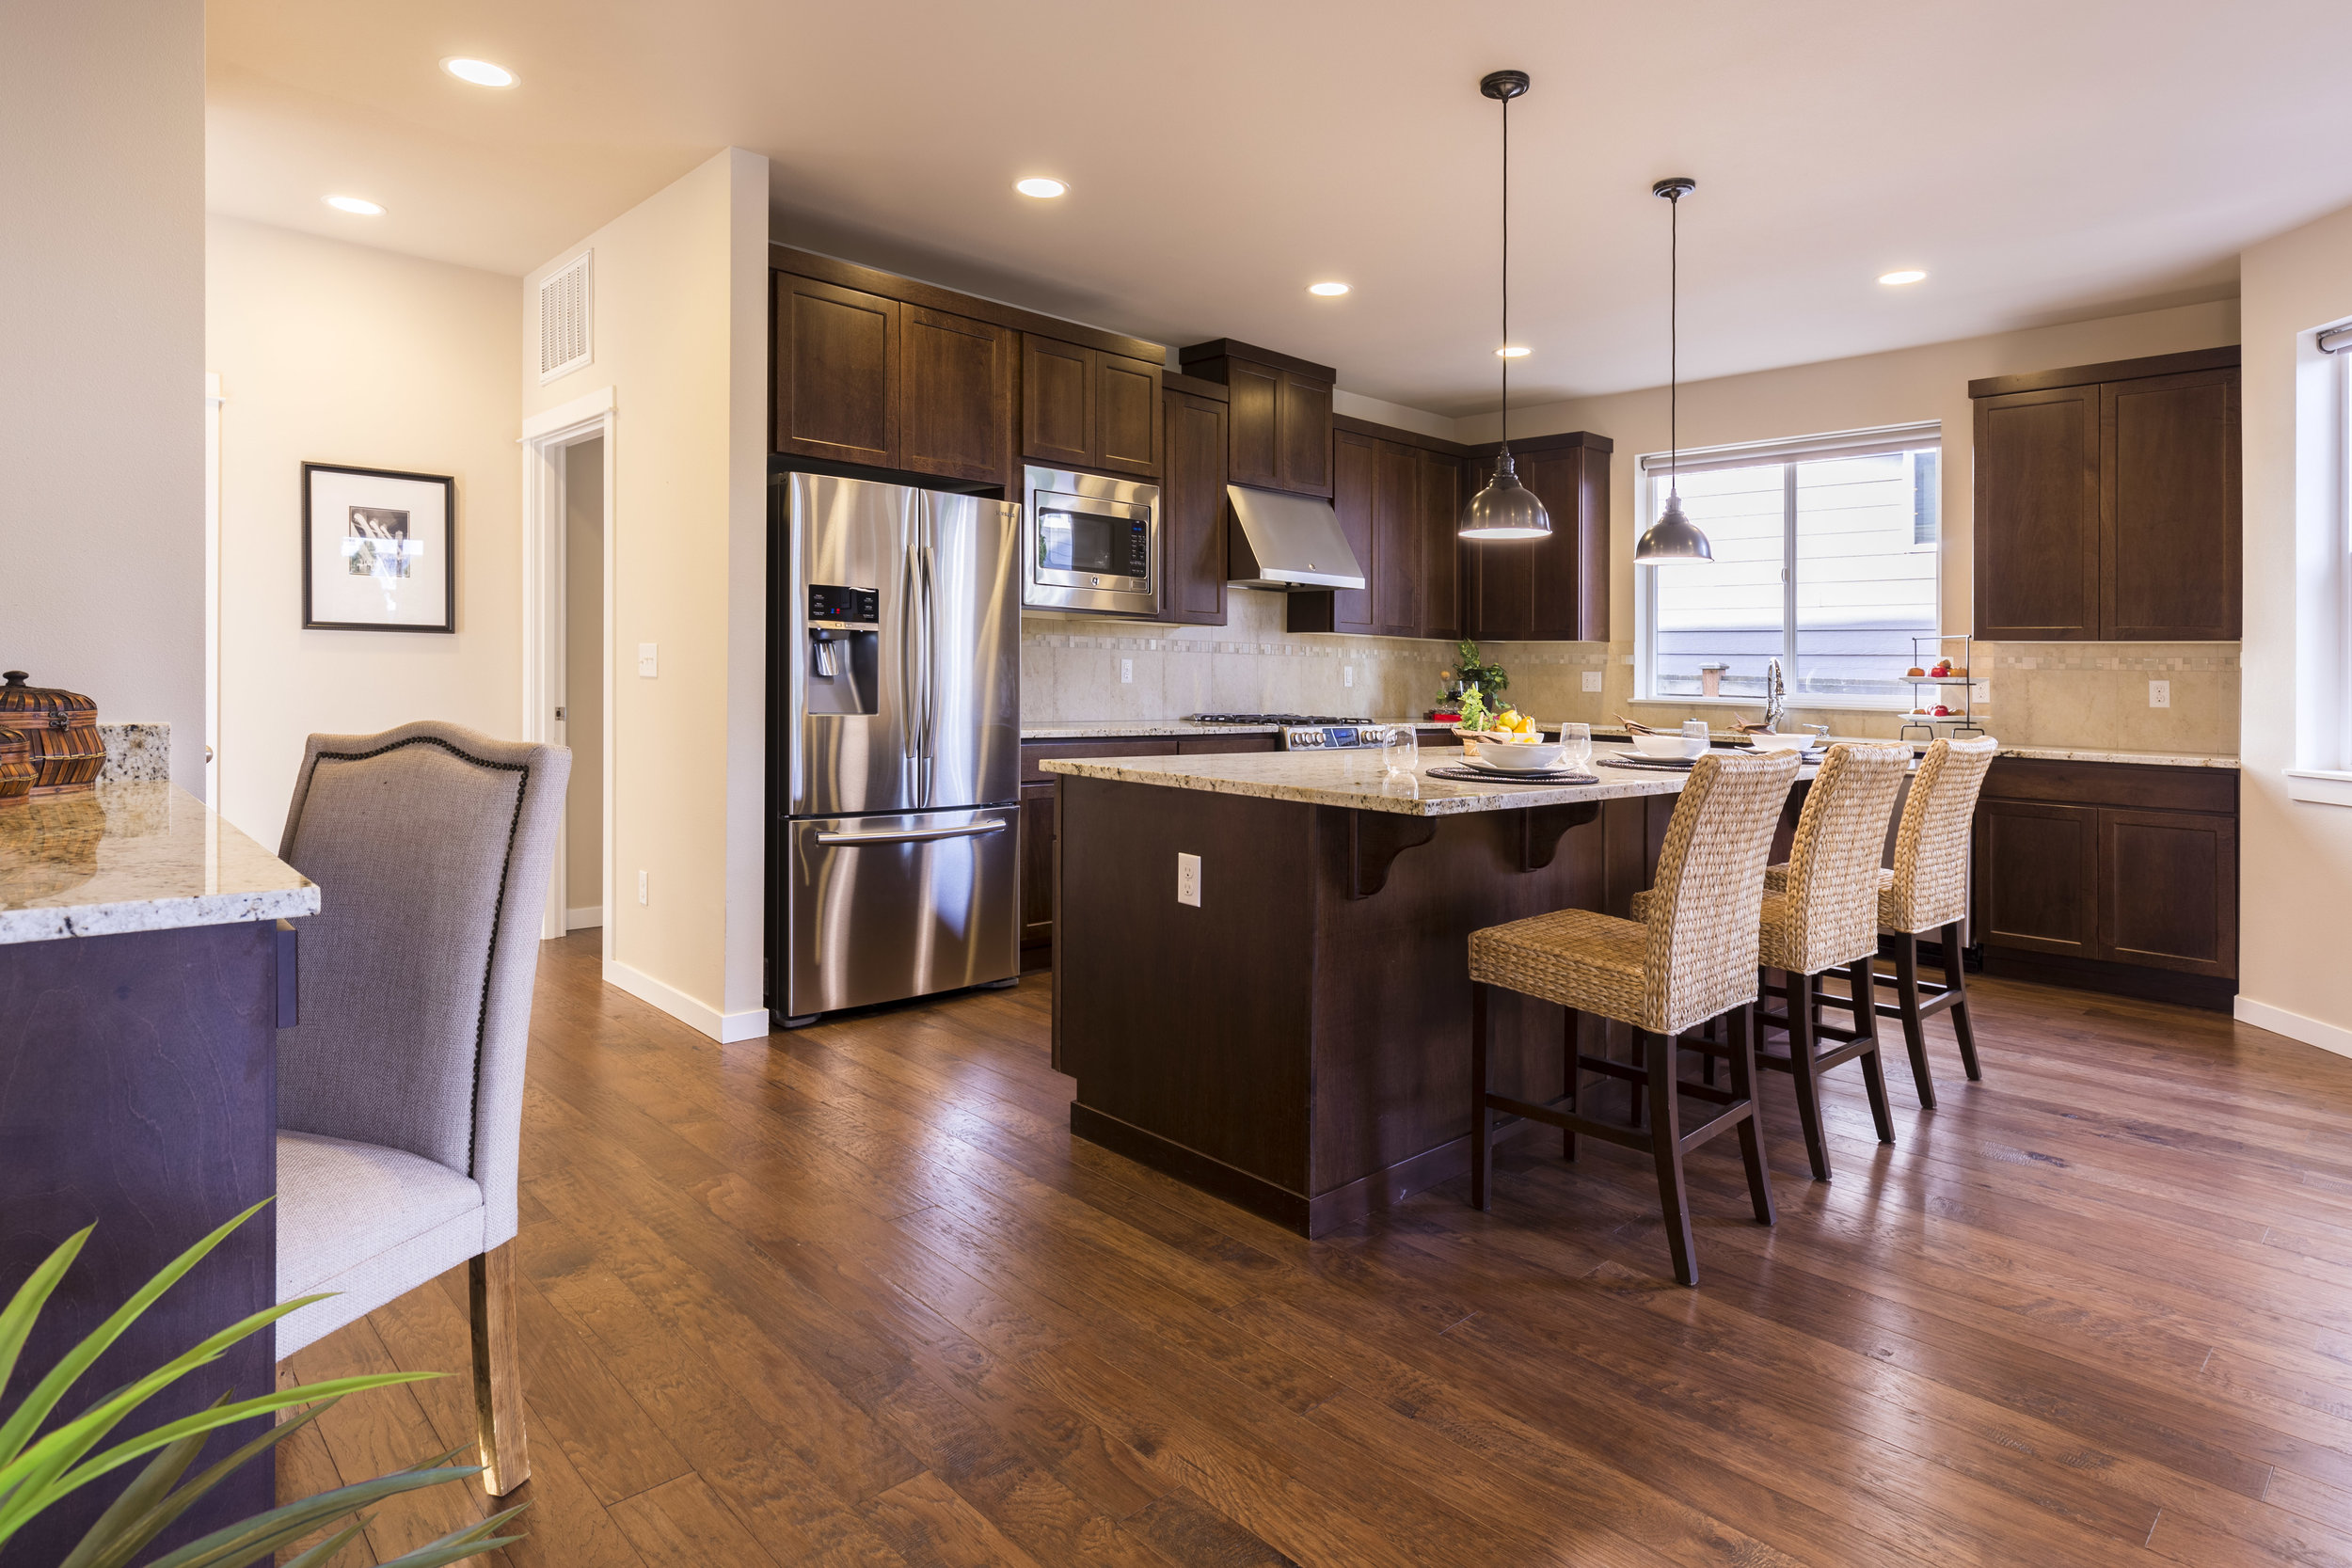 Professional Photography - The highest quality photography is guaranteed when we list your home. We are involved before the photo shoot to prepare the home, work directly with the photographer during the shoot, & are working behind the scenes to ensure the photos are truly exceptional.